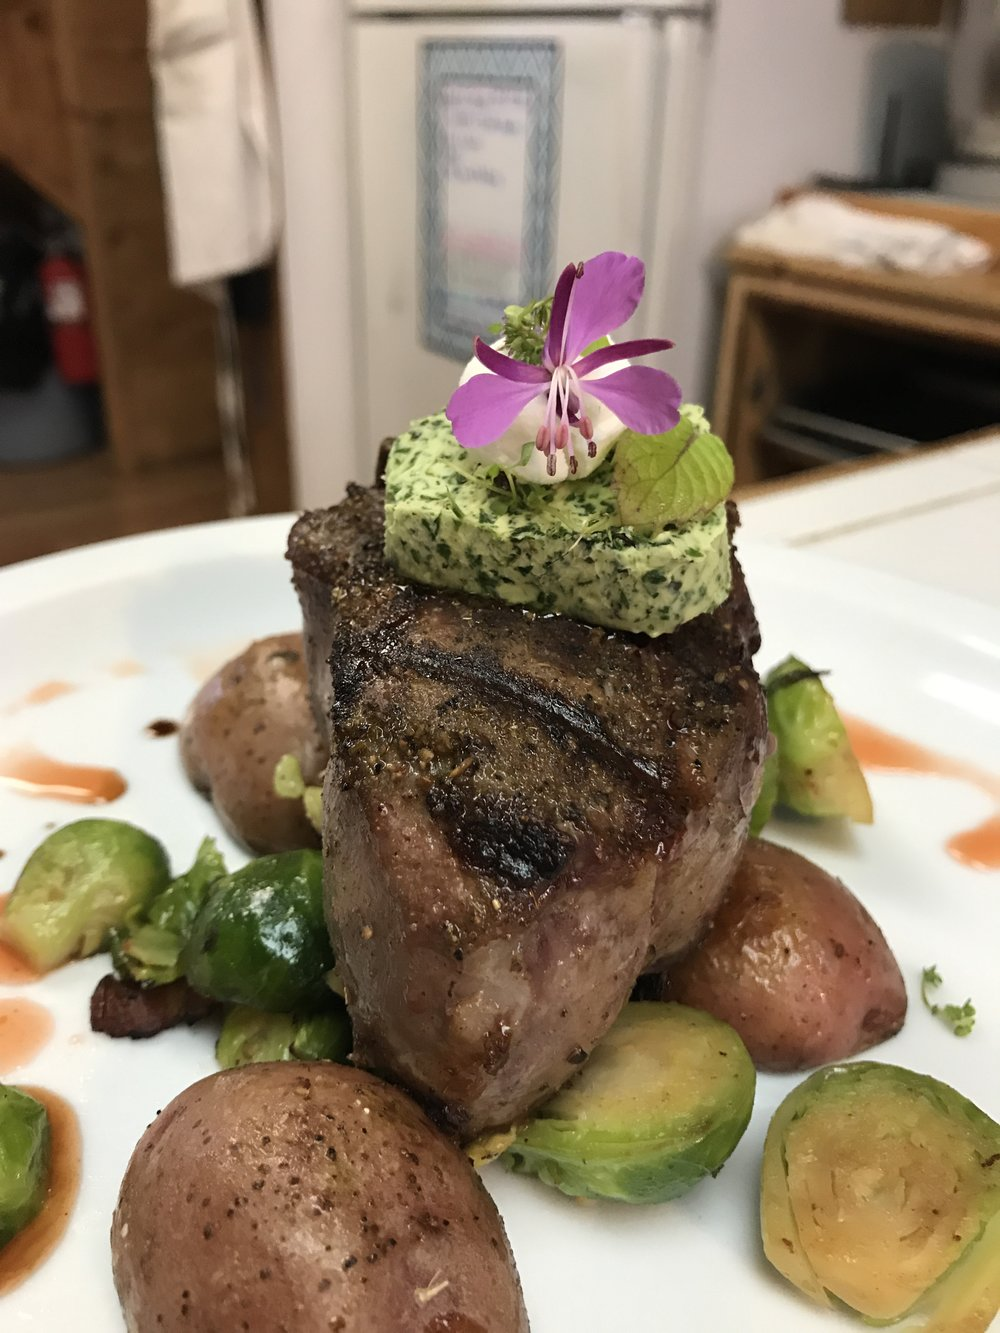 Grilled Lamb topped with Herb Butter over Roasted Red Potatoes and Brussels Sprouts, garnished with wild Fireweed.